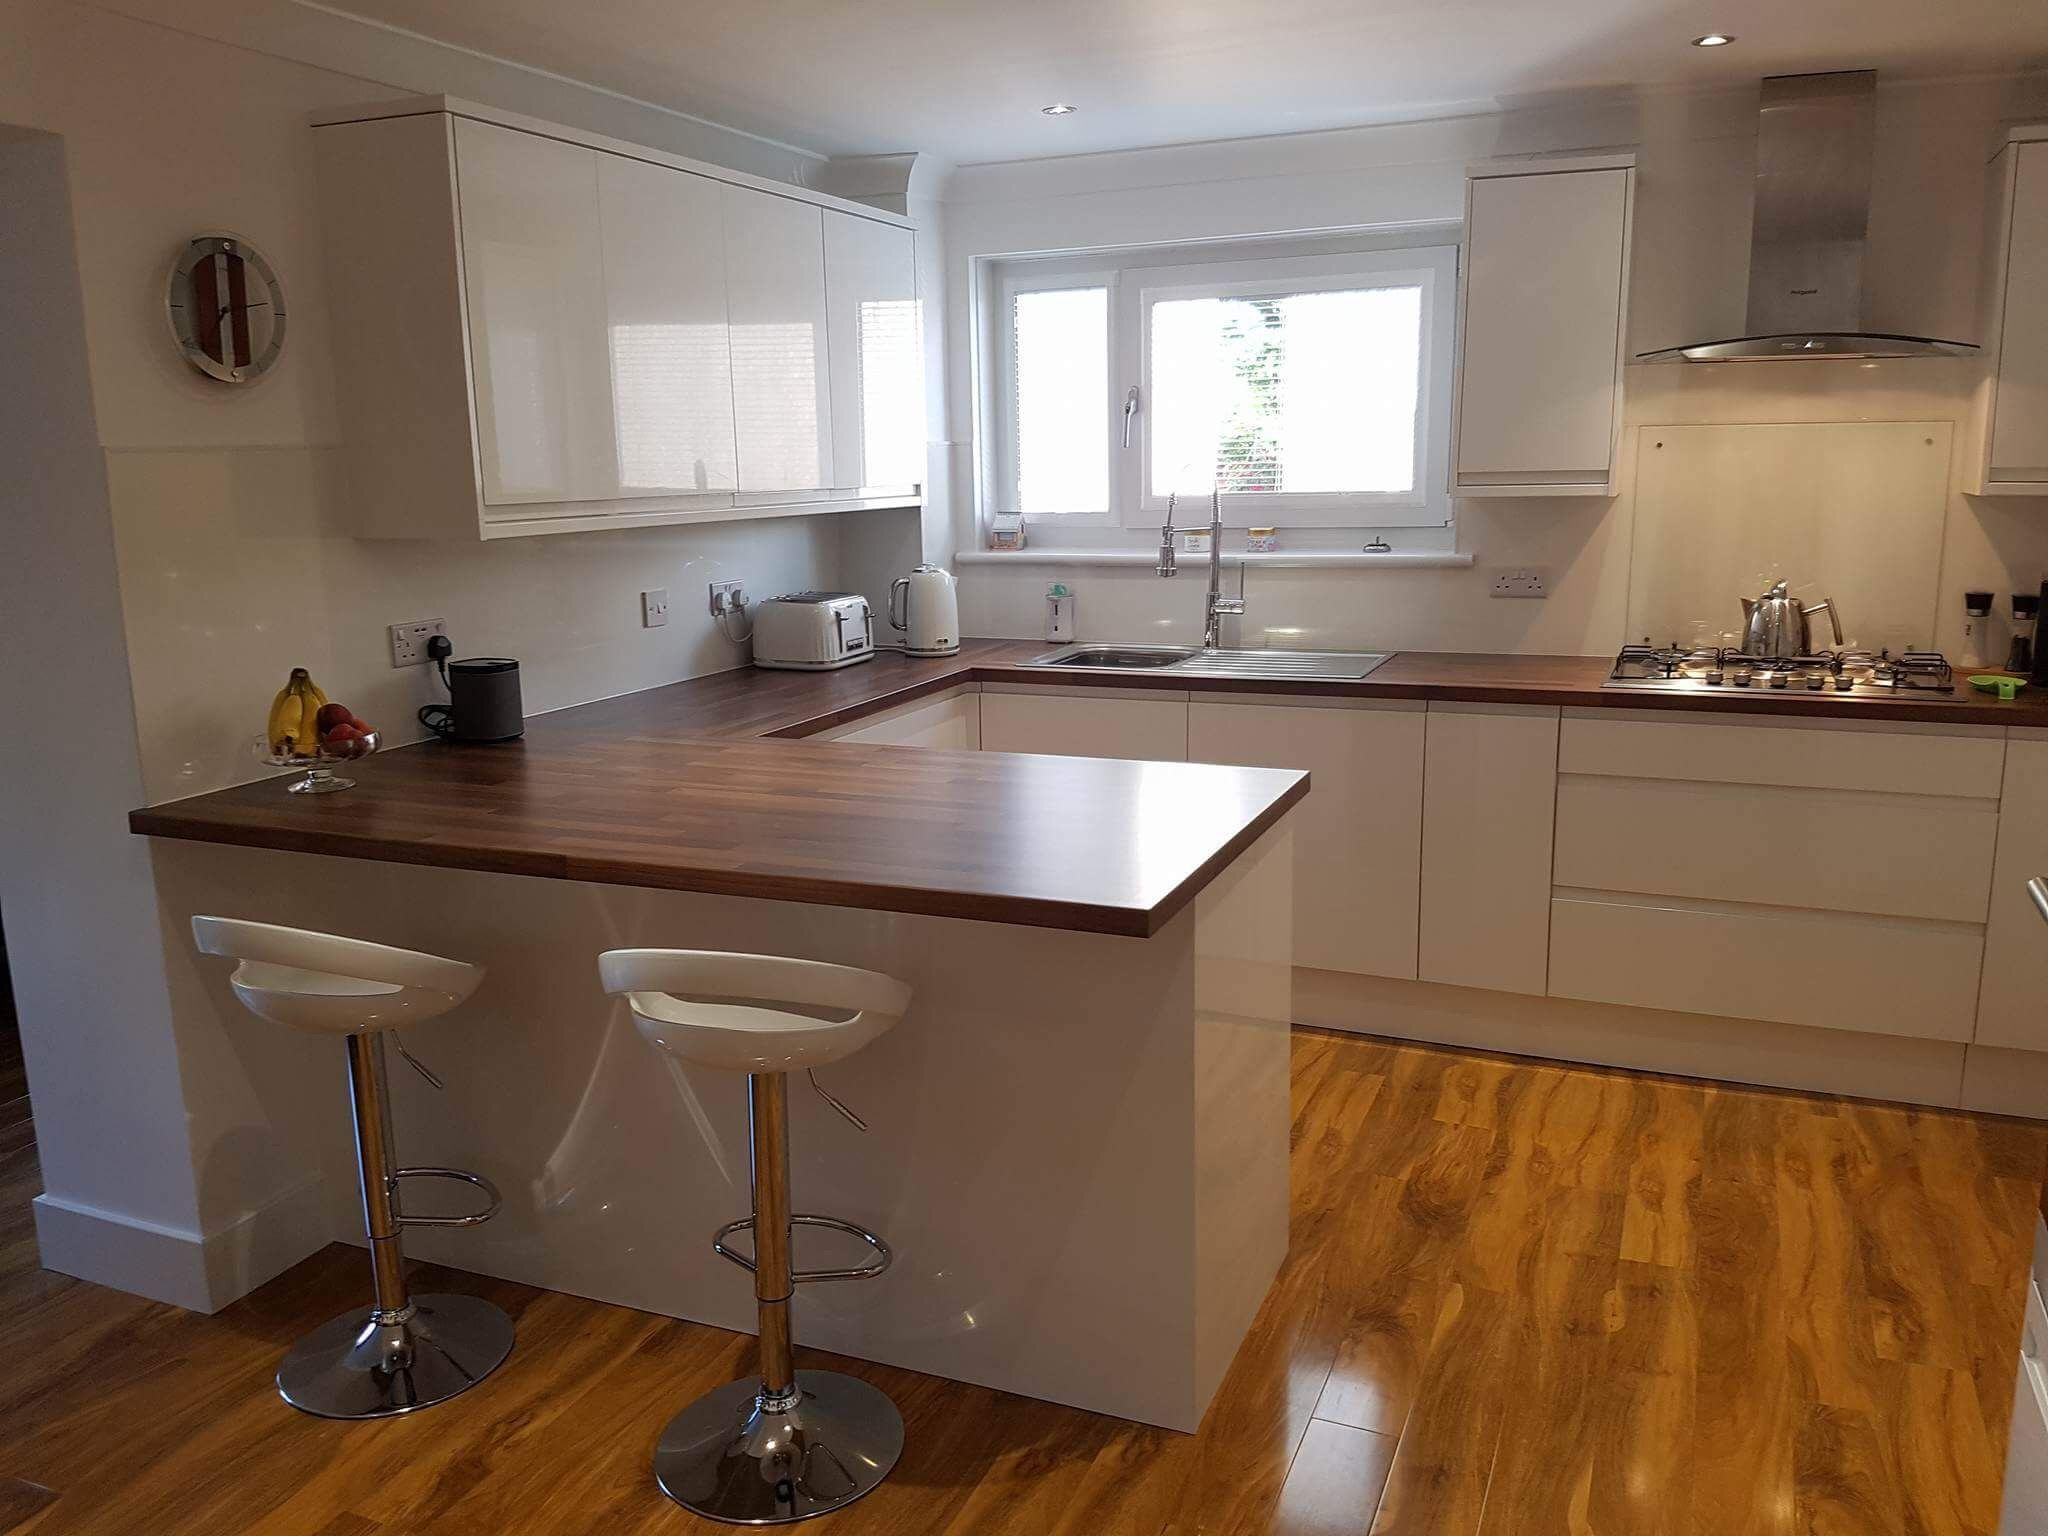 Howdens The UK's Number 1 Trade Kitchen Supplier White